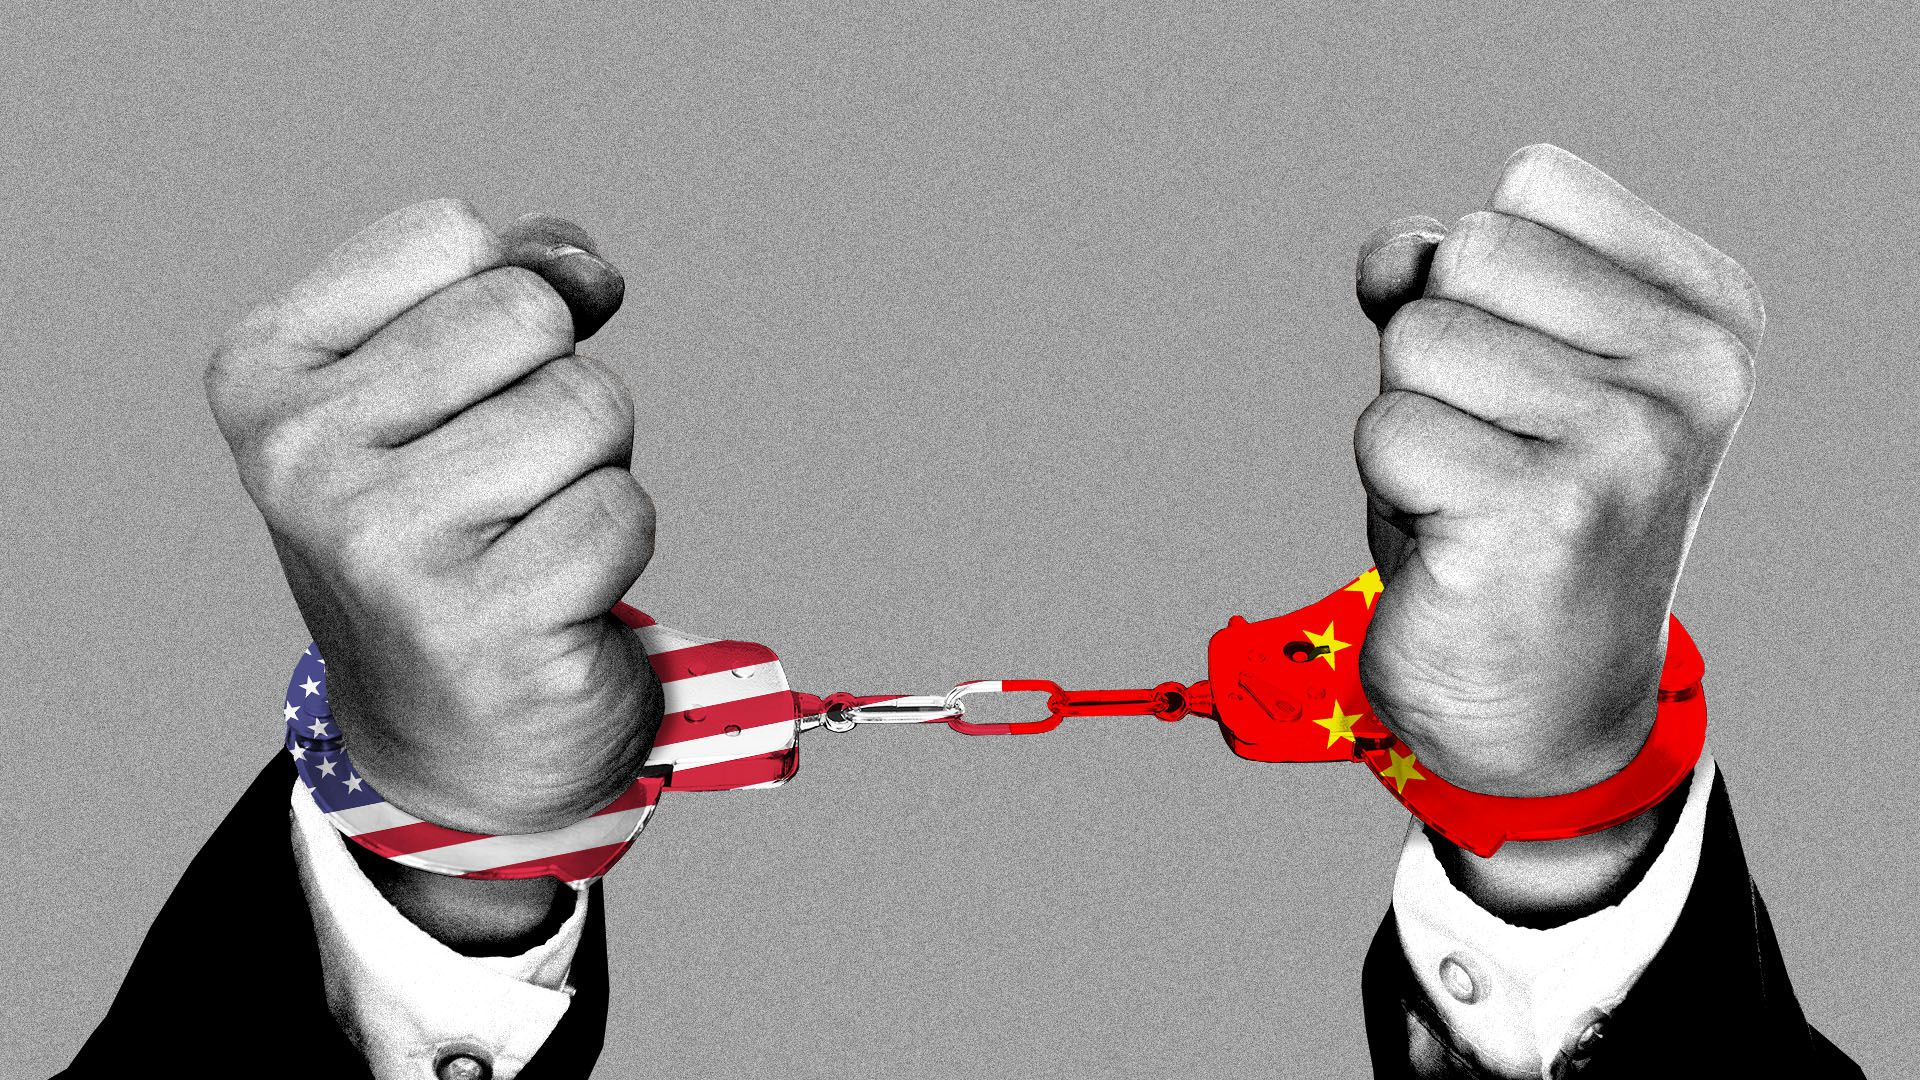 Illustration of man in handcuffs with U.S. and Chinese flags